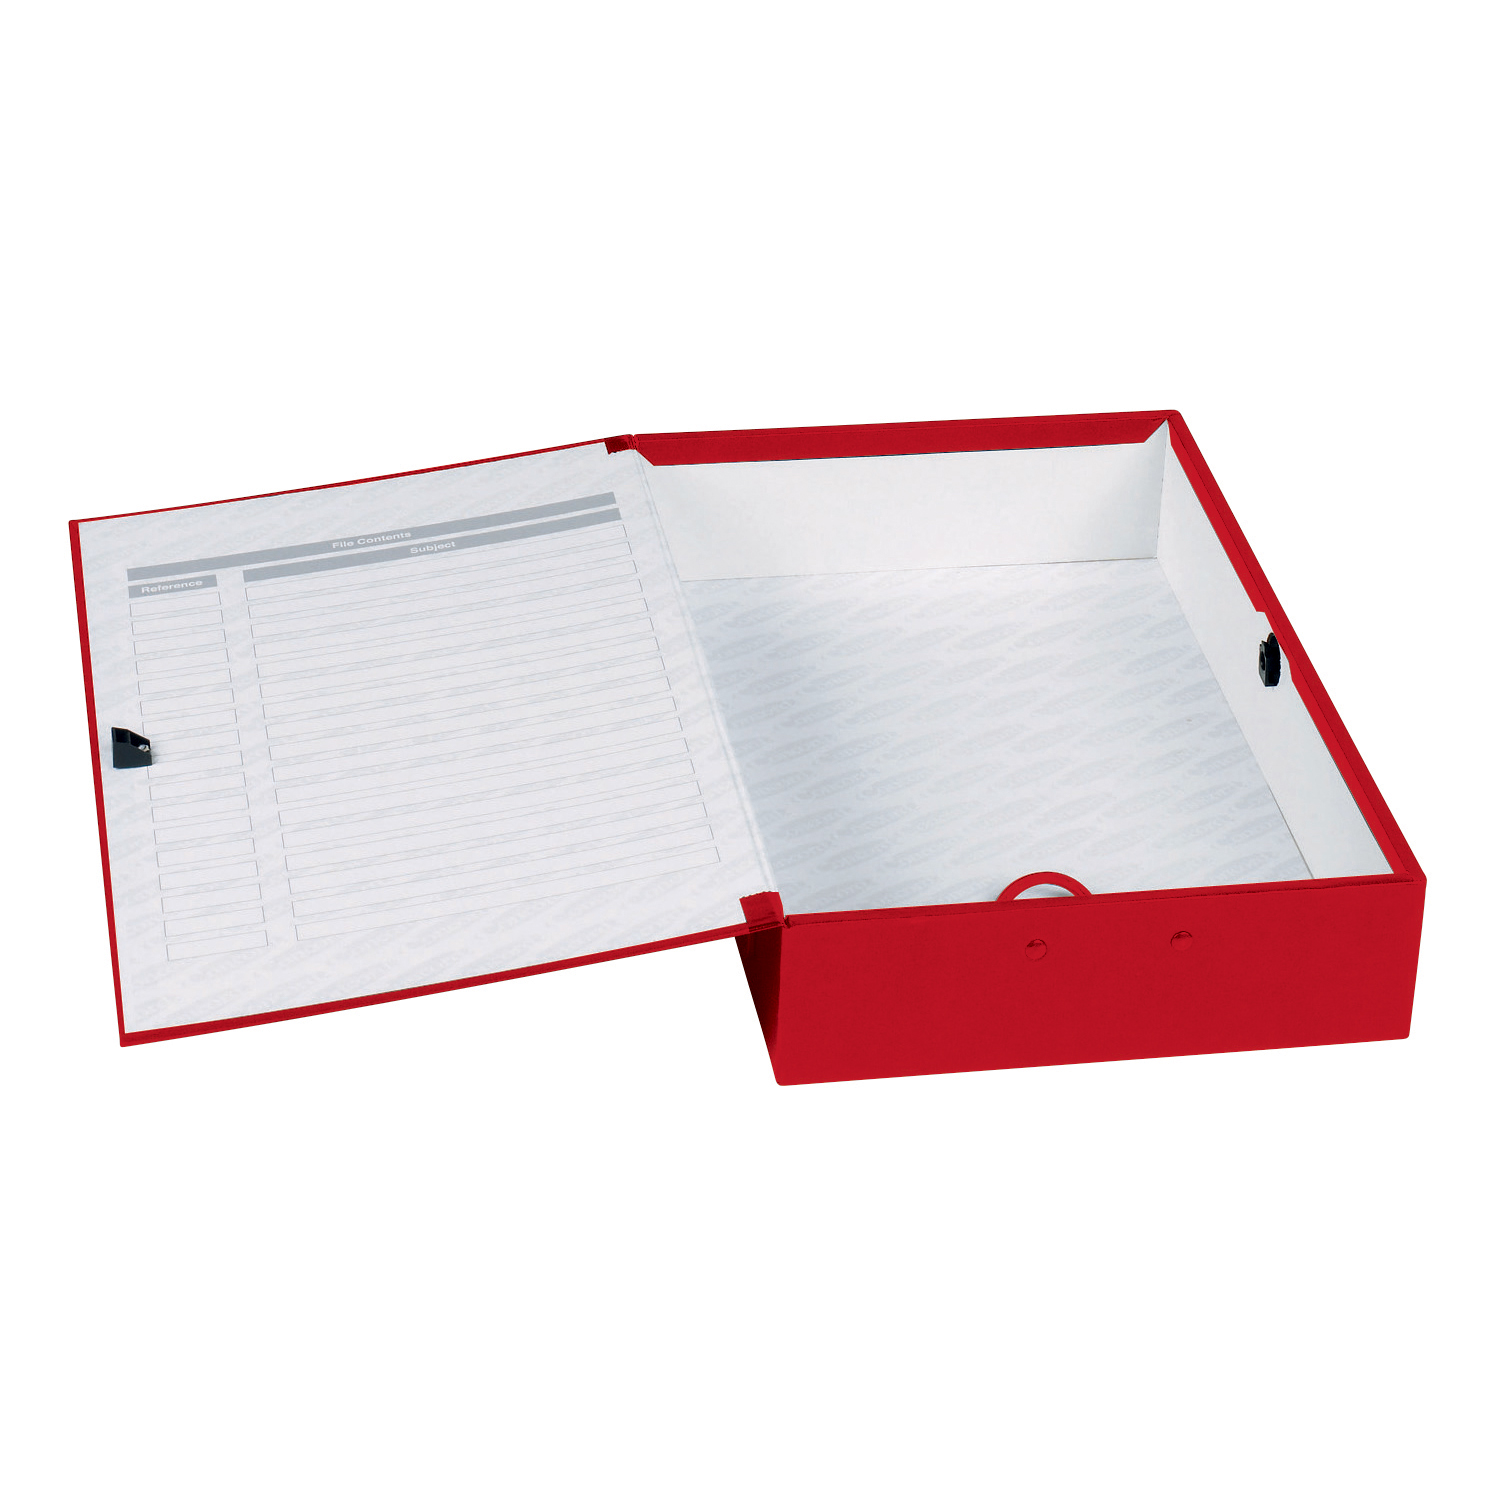 Concord Classic Box File 75mm Spine Foolscap Red Ref C1279 Pack 5